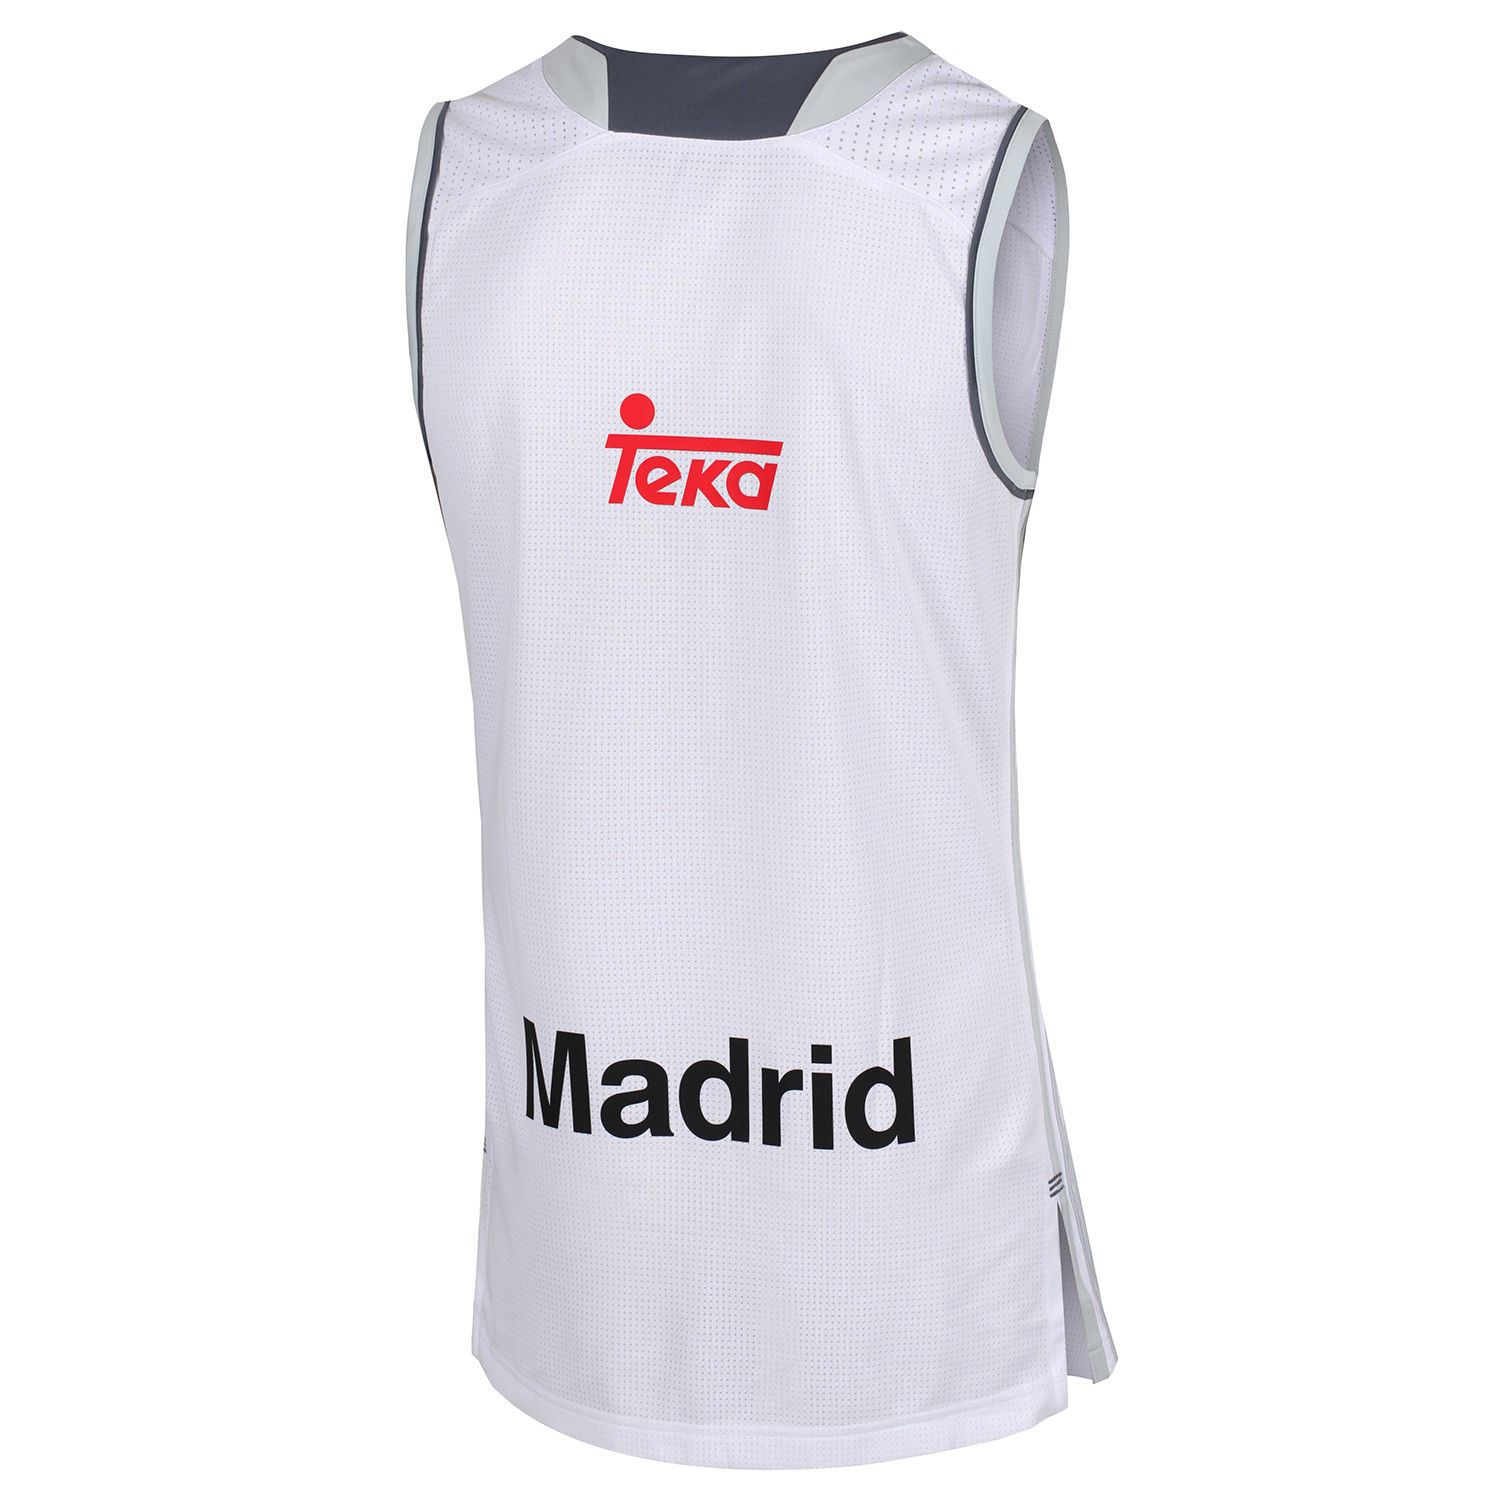 Details zu adidas BASKETBALL JERSEYS REPLICA SWINGMAN NBA BULLS THUNDER REAL MADRID ROCKETS